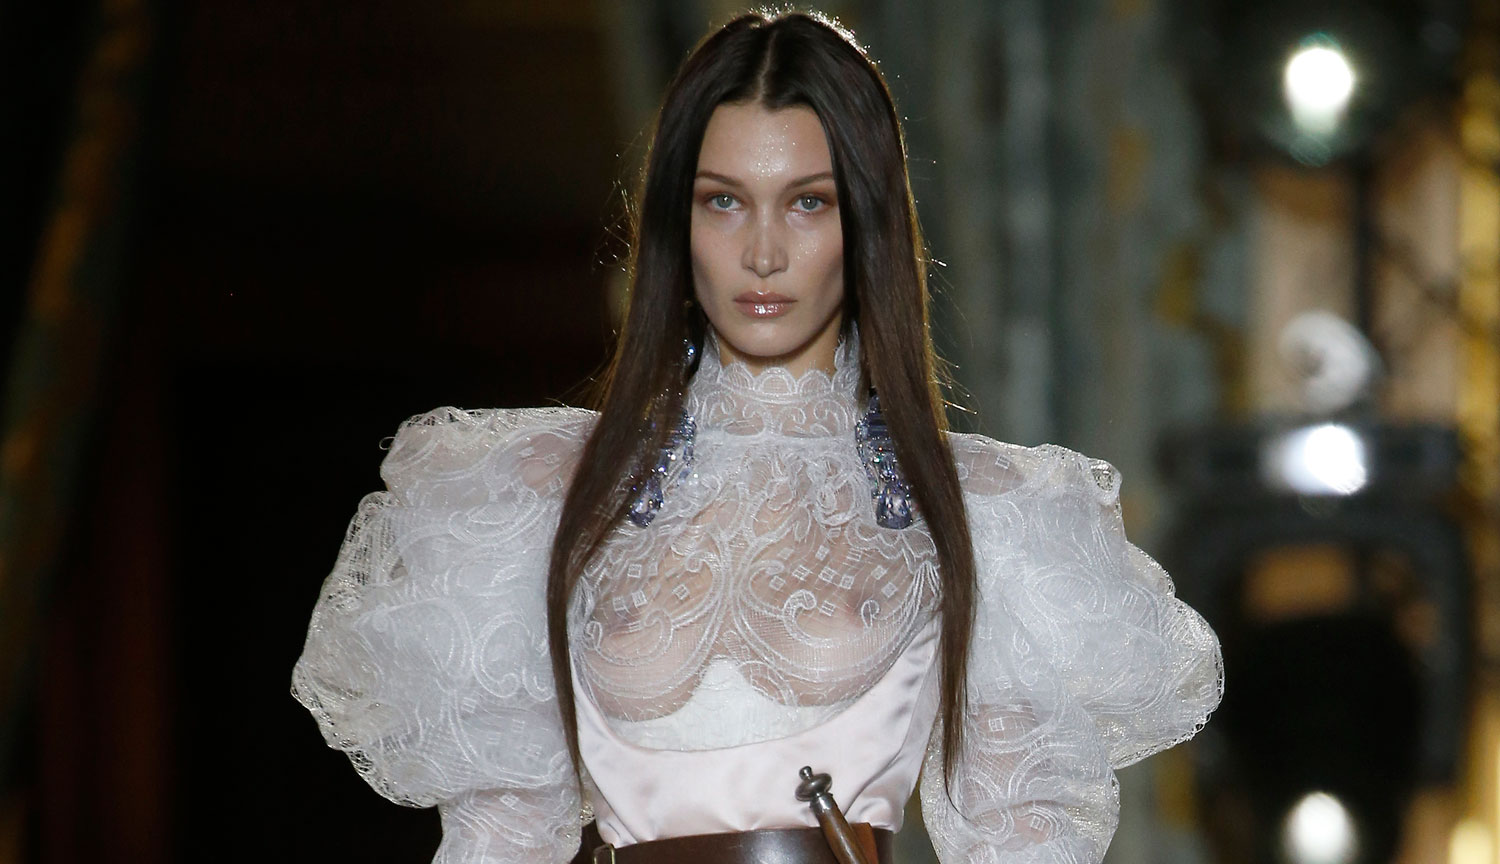 Bella Hadid Wears Sheer Dress with a Dagger for Vivienne Westwood's Paris Runway Show